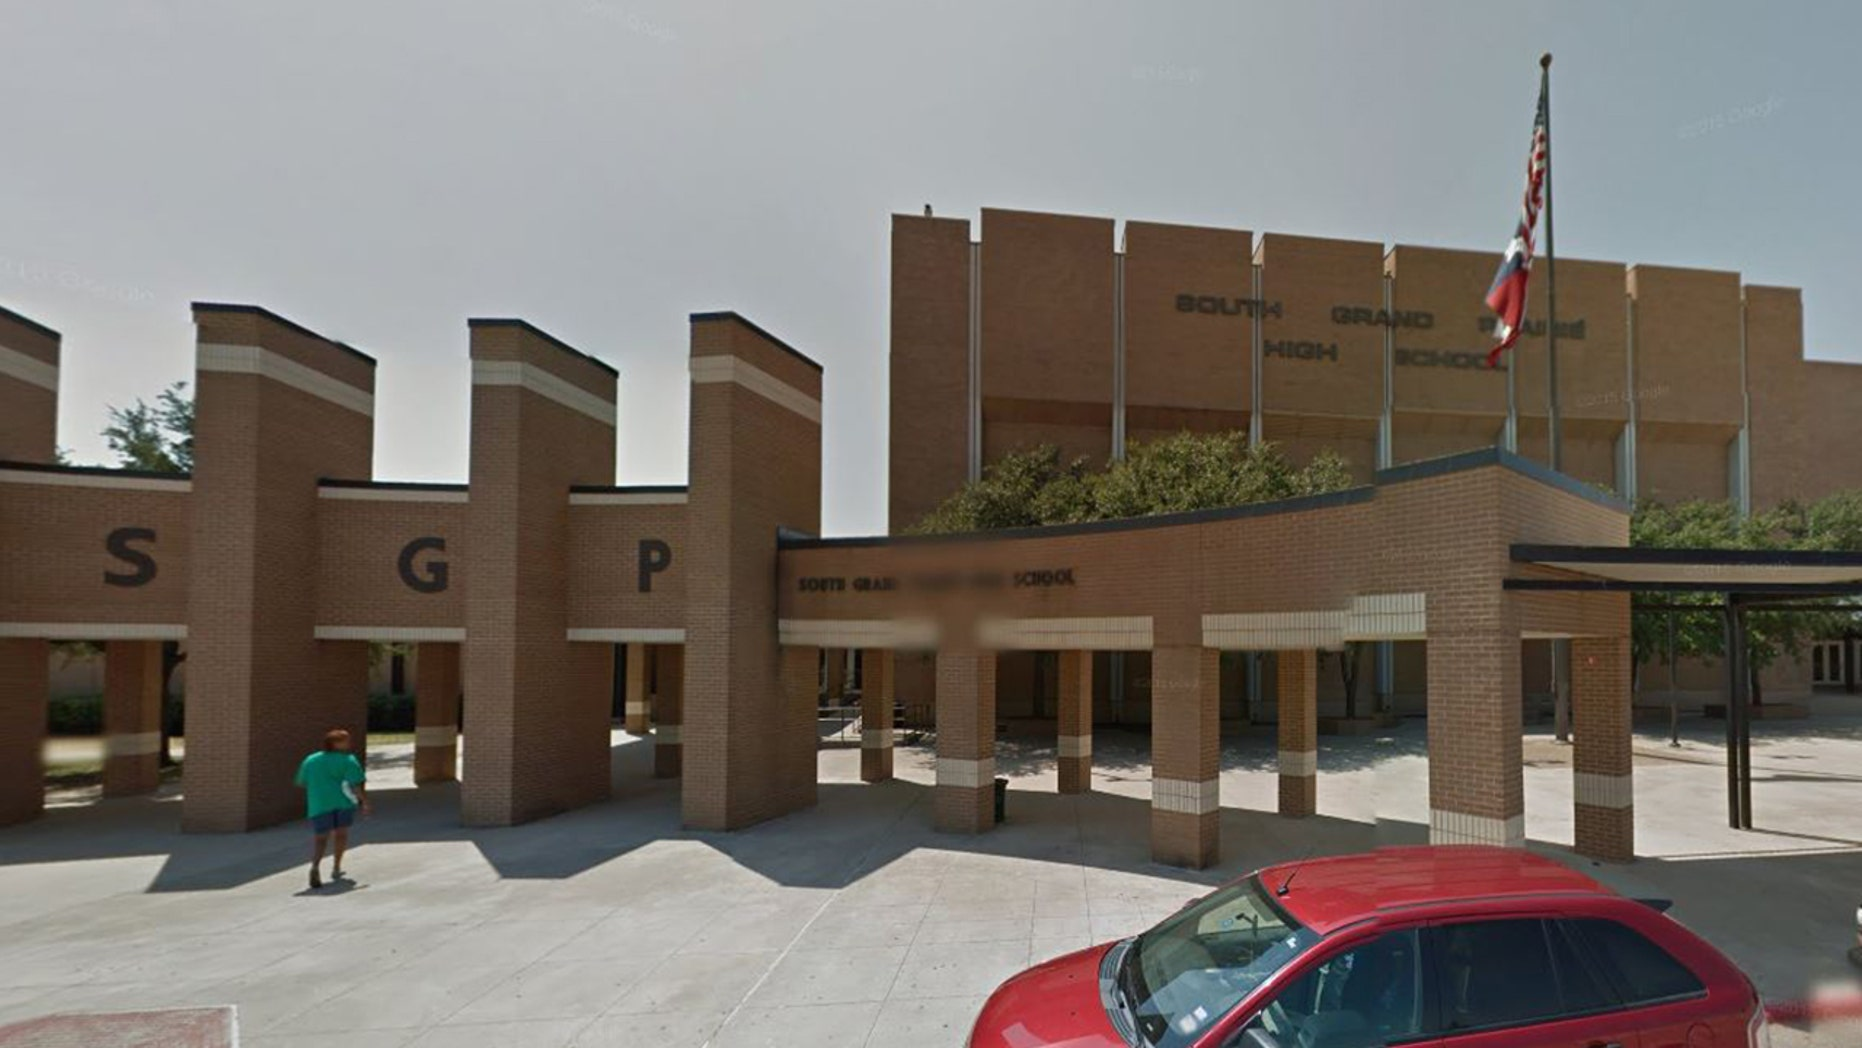 A street view image of South Grand Prairie Early College High School in Texas.